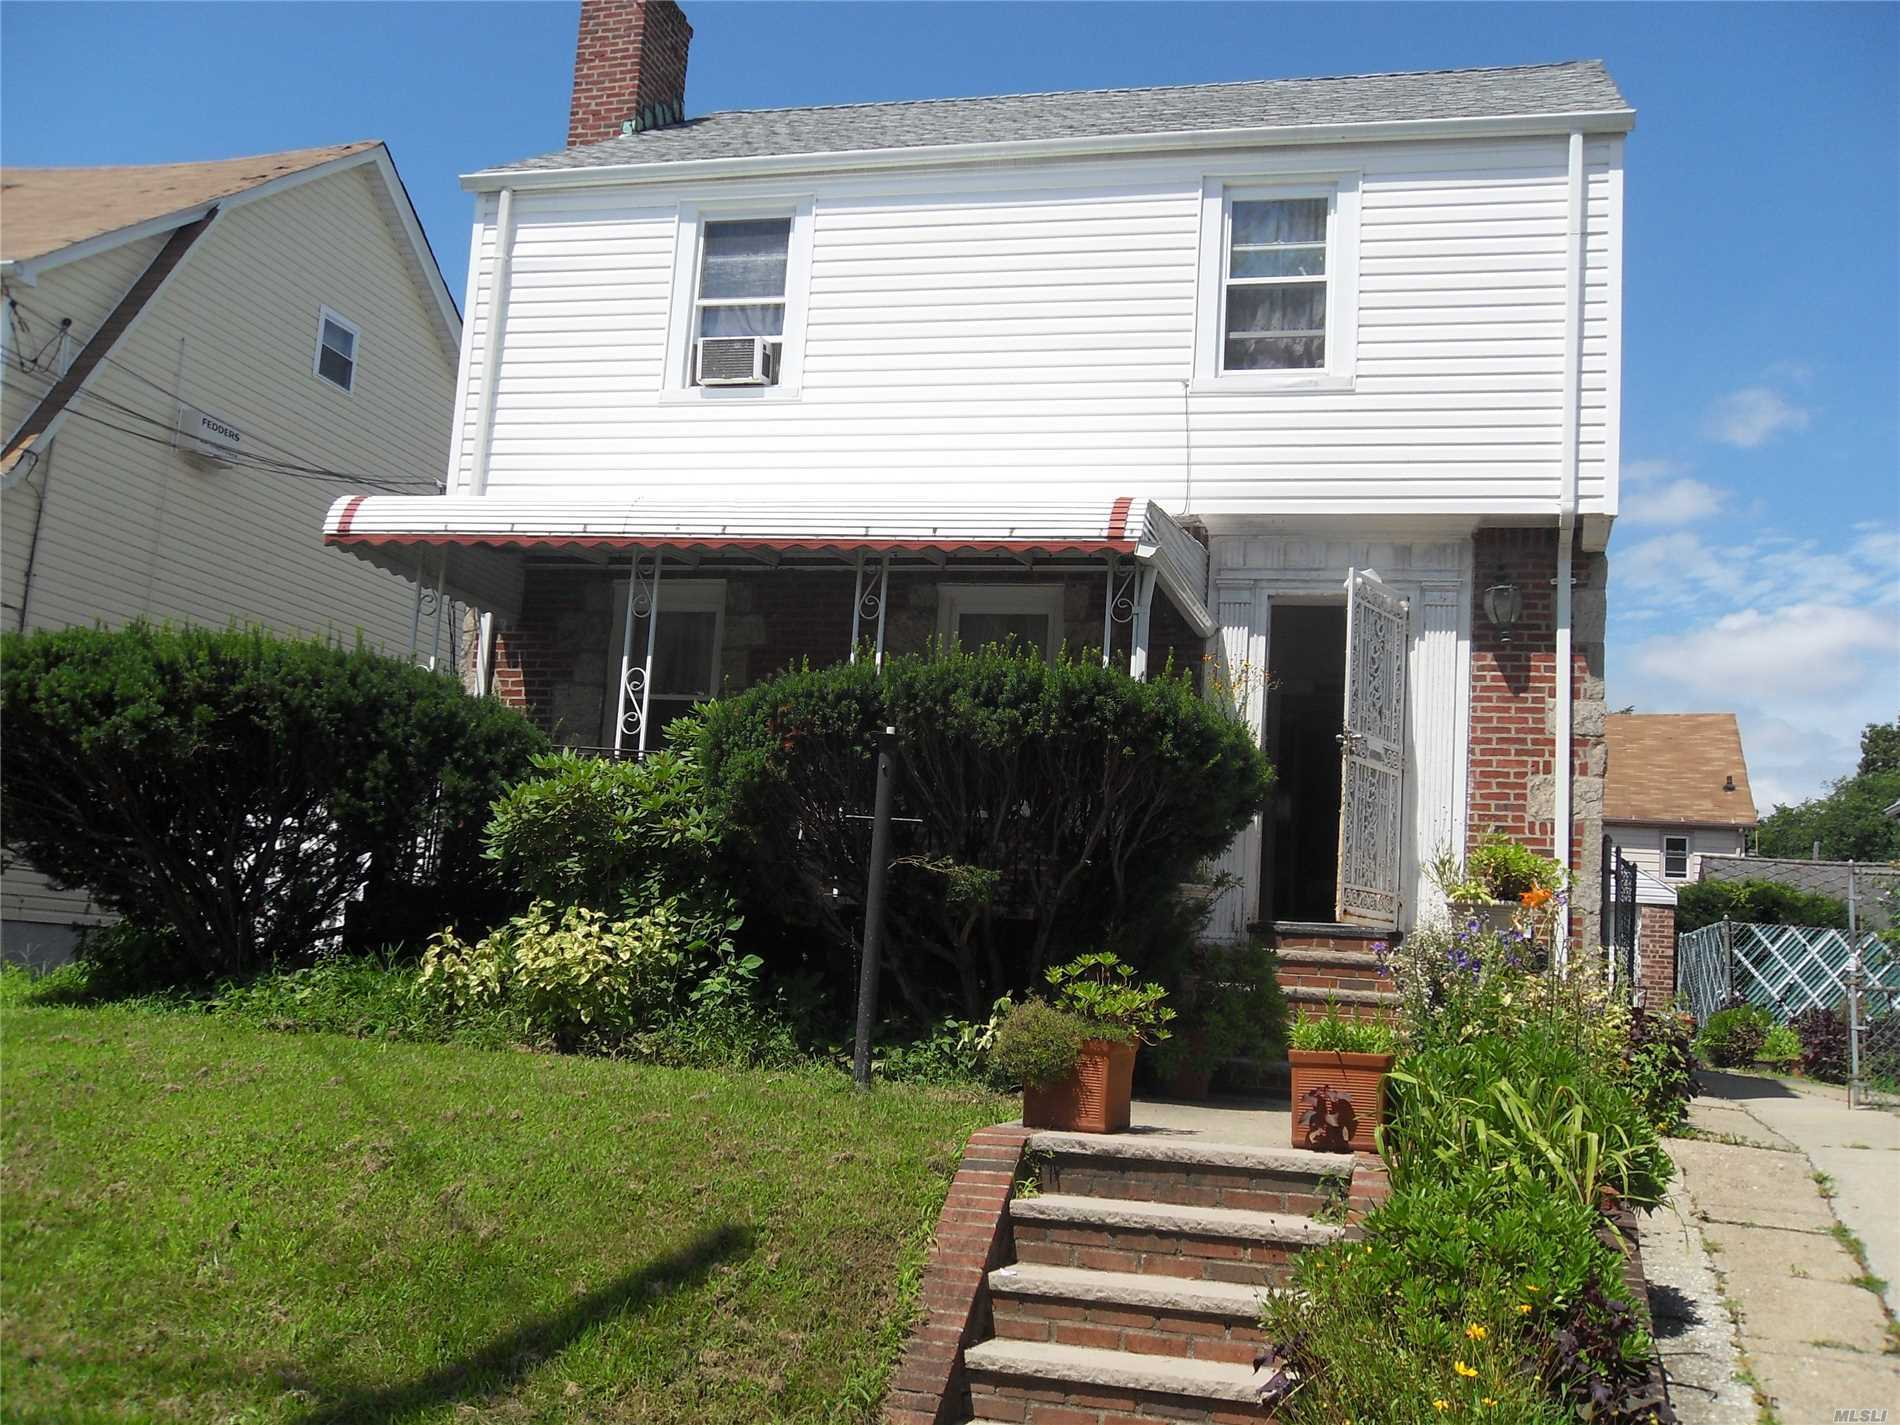 Single Family, Detached Home In Laurelton.  Livingroom W/ Fireplace, Formal Dining Room, Den, Eat-In-Kitchen,  3 Bedrooms, 2.5 Bathrooms, Finished Basement With Separate Entrance, Hardwood Flooring Throughout, Private Driveway And Garage.  Convenient To Highway, Bus, Lirr And Shopping